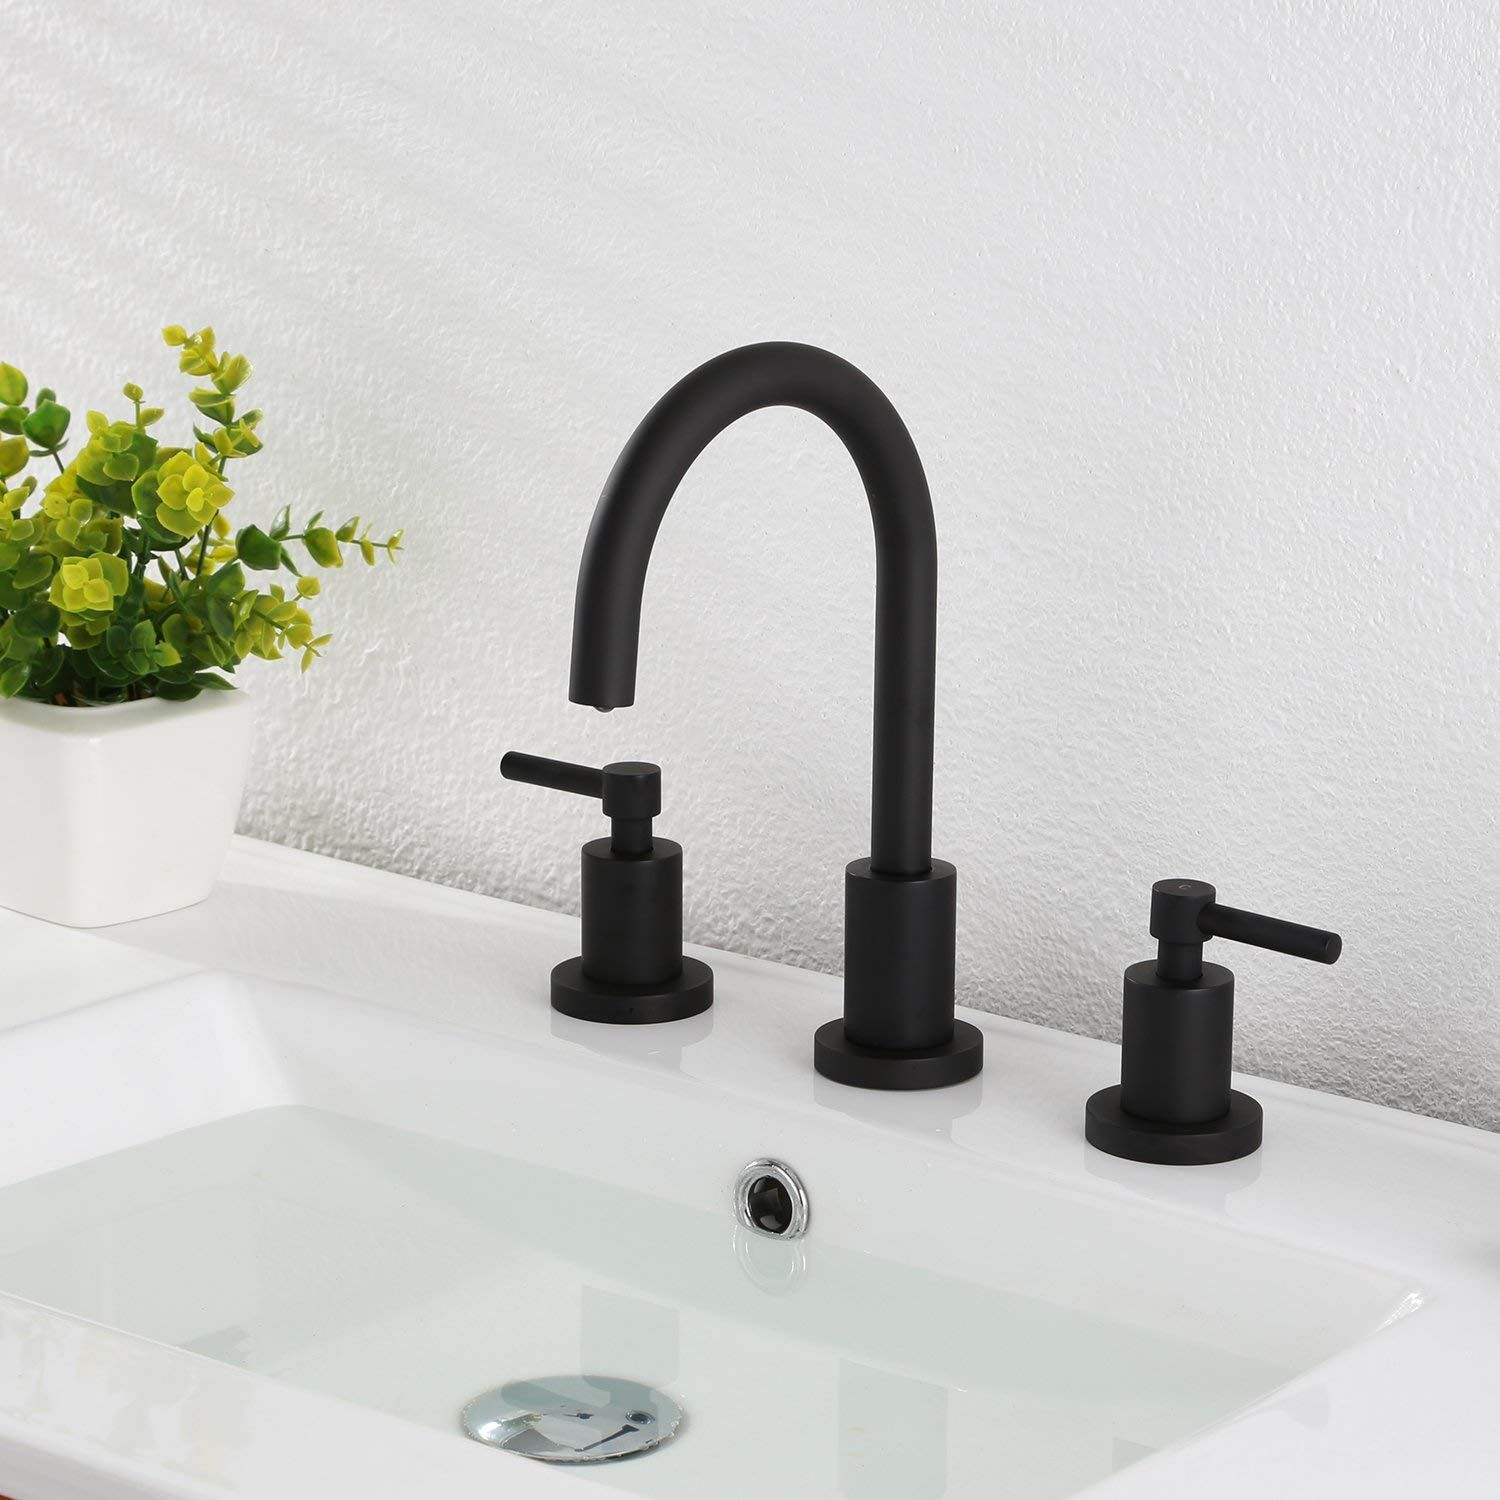 Bathroom Basin Sink Faucet 3 Holes Two Handles Deck Mount Vessel Mixer Taps Matte Black Widespread Bathroom Faucet Black Faucet Bathroom Bathroom Faucets